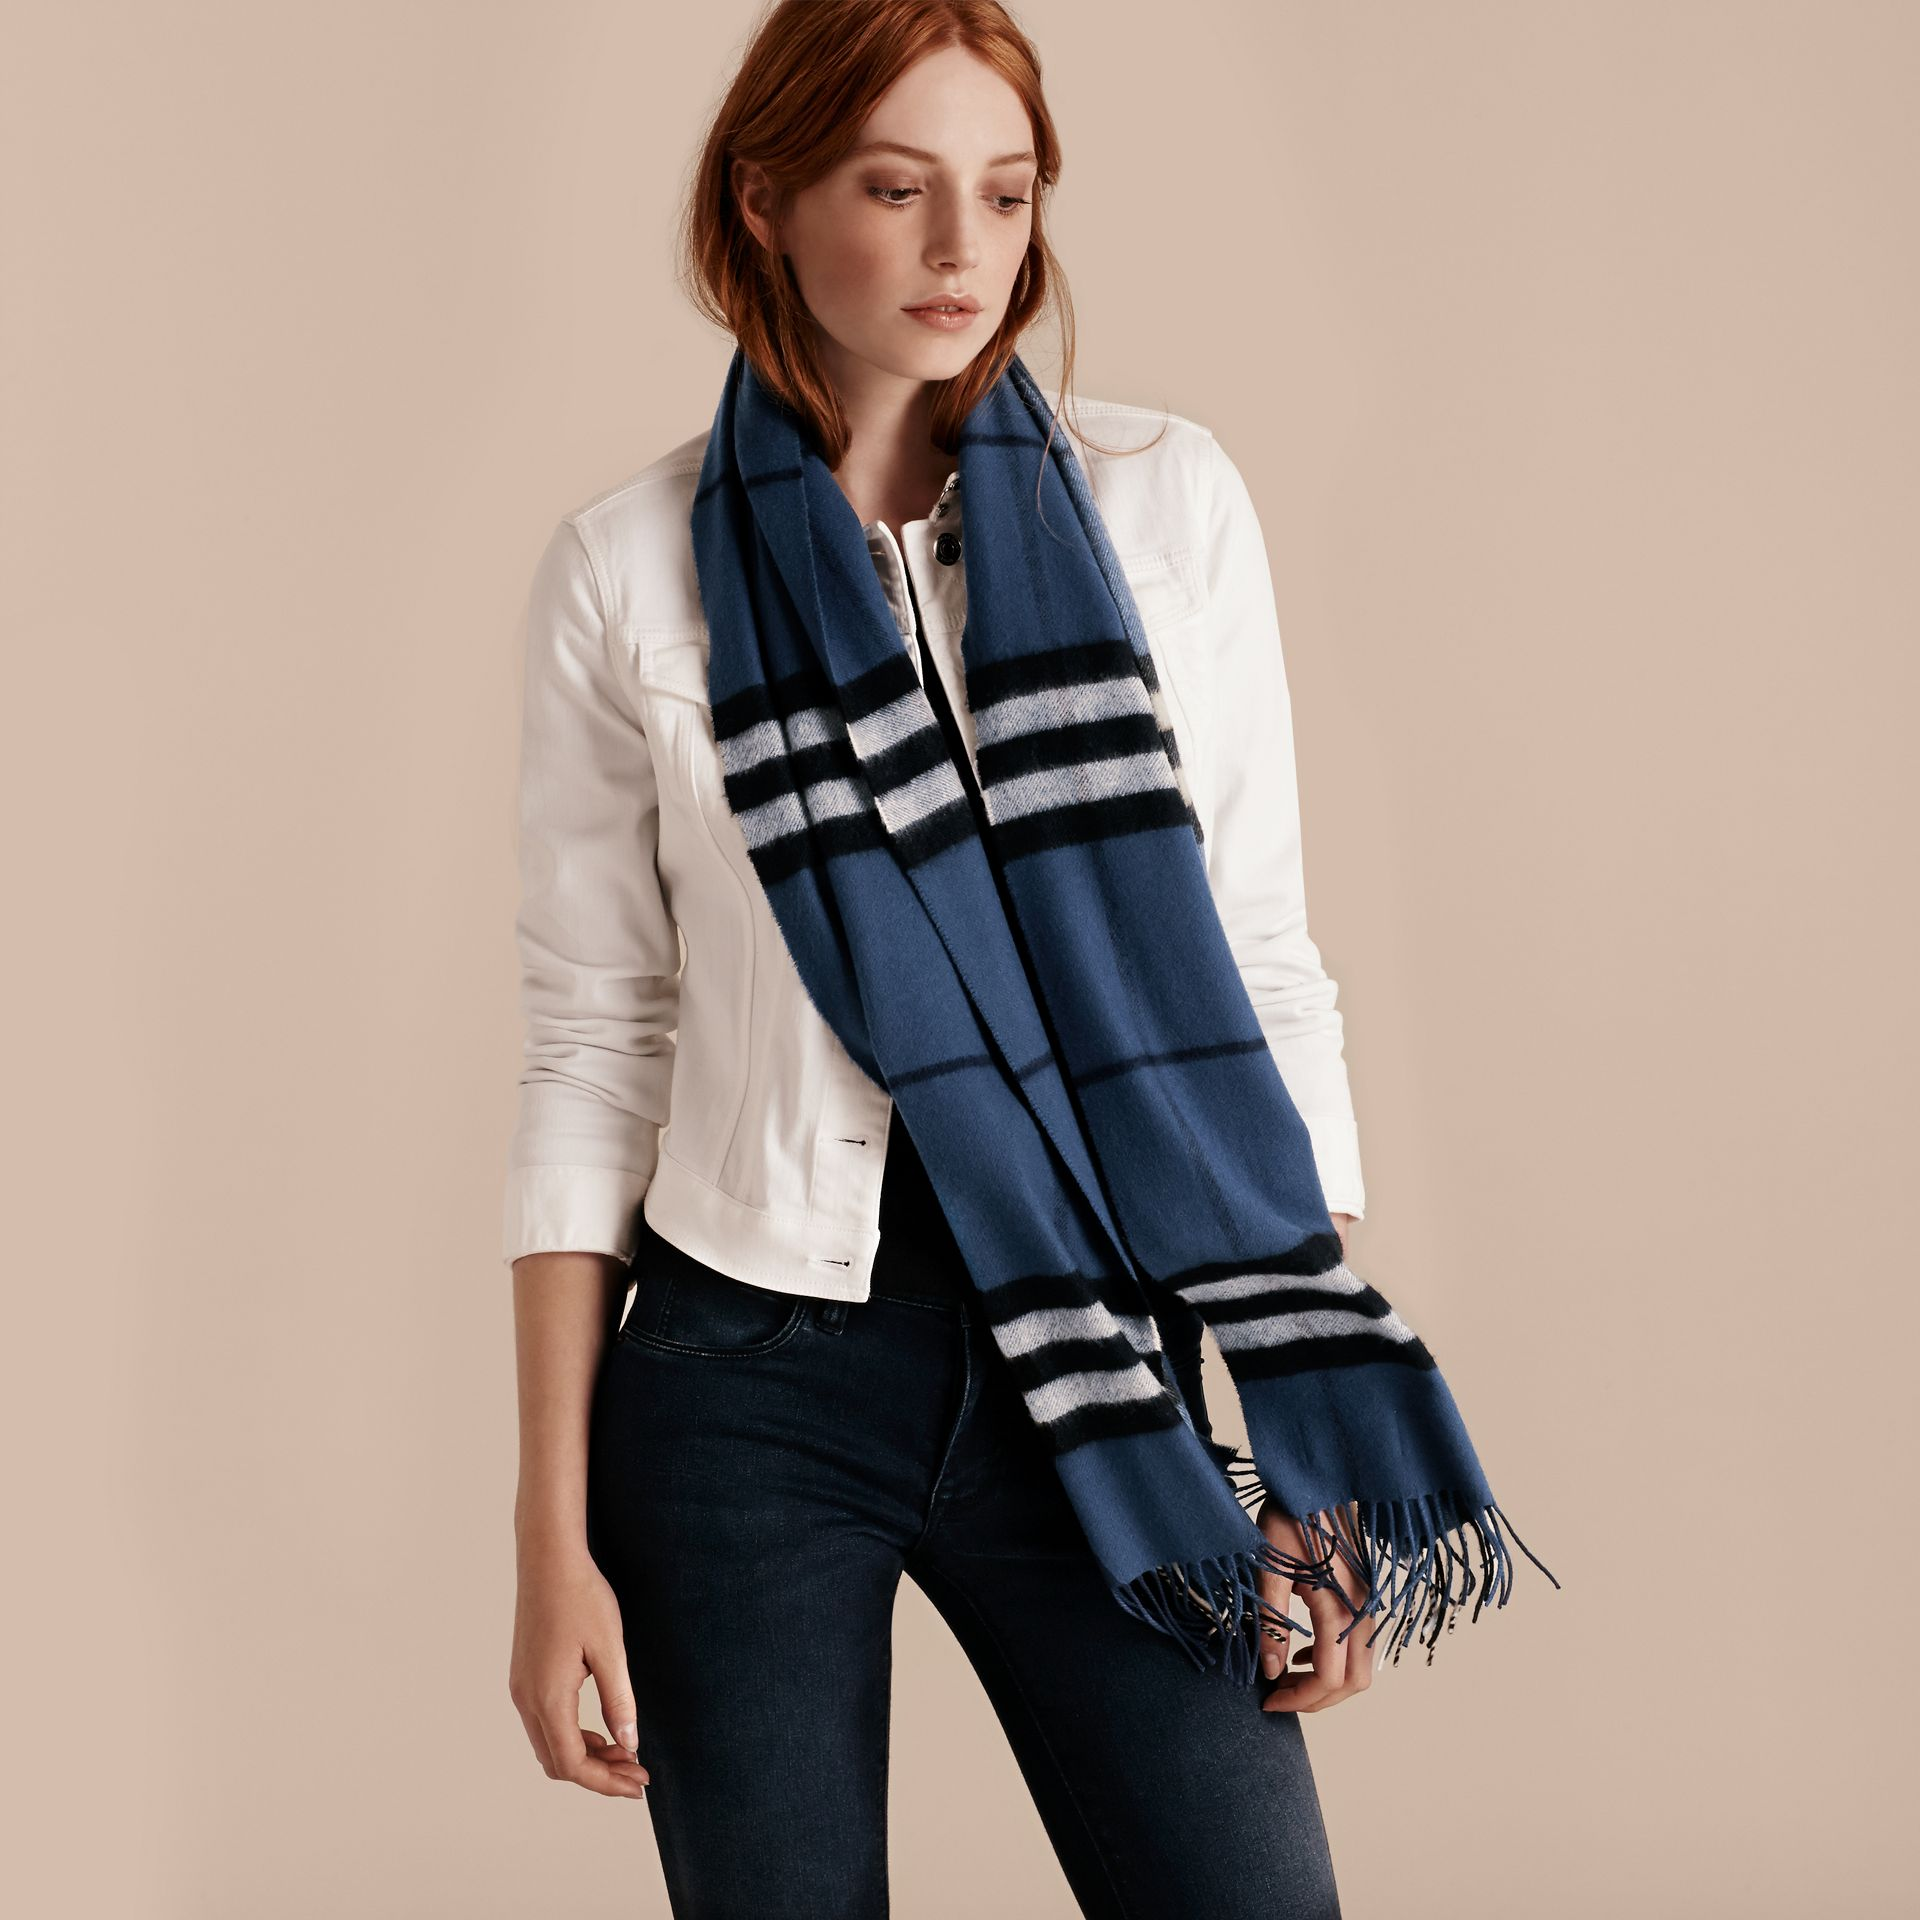 Cadet blue The Classic Cashmere Scarf in Check Cadet Blue - gallery image 3